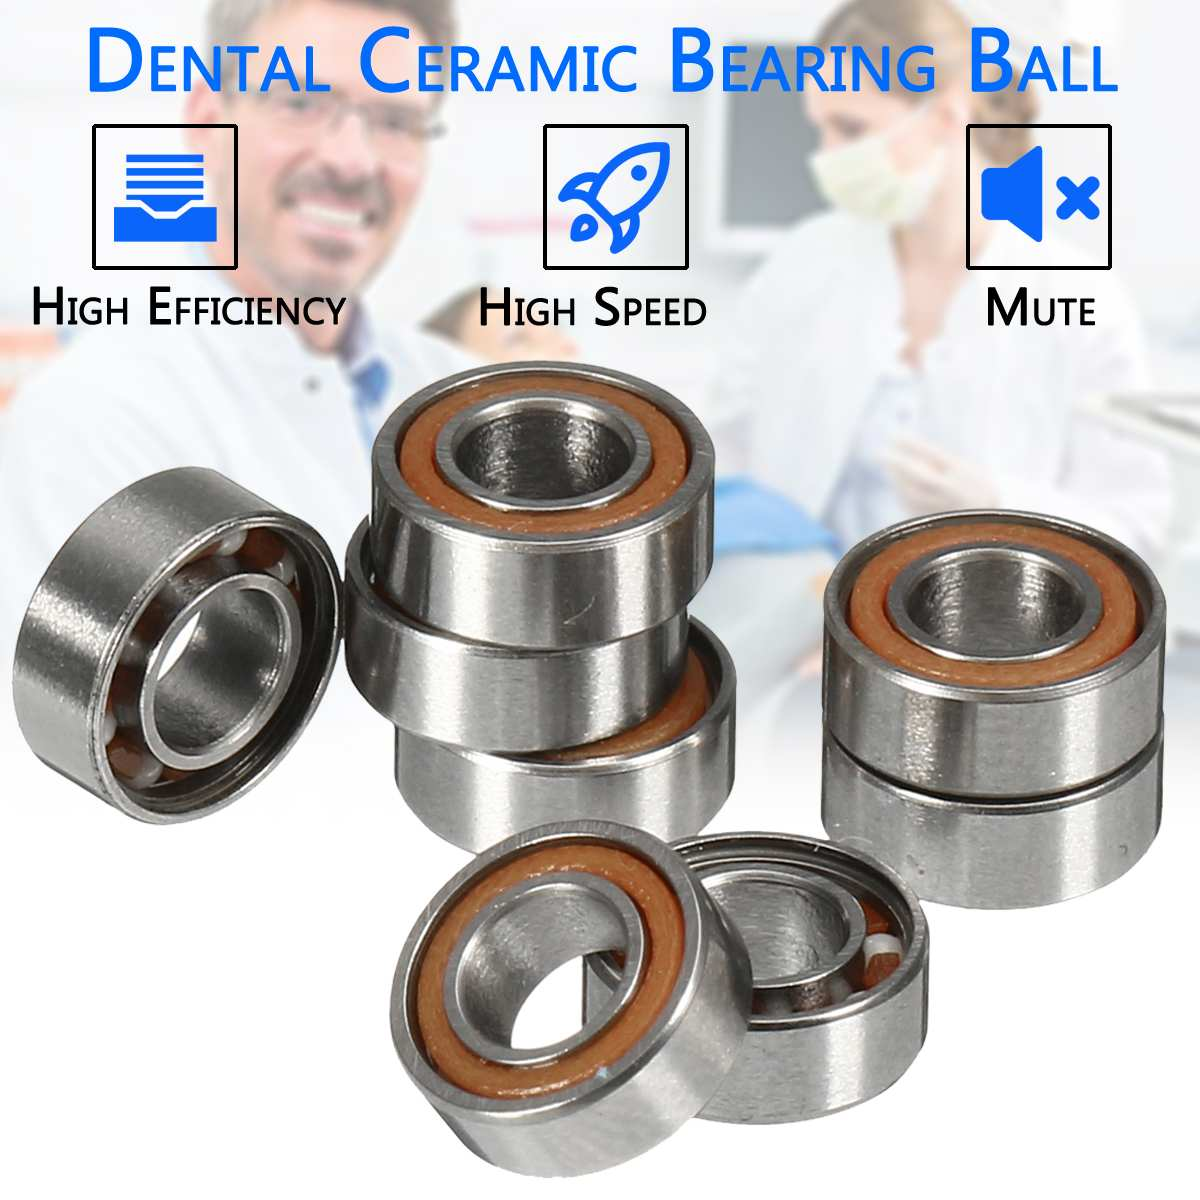 10pcs 6mm High Speed Handpiece Bearing Dental Ceramic Bearings For Handpiece Air  Bearing Ceramics Dentist Tools